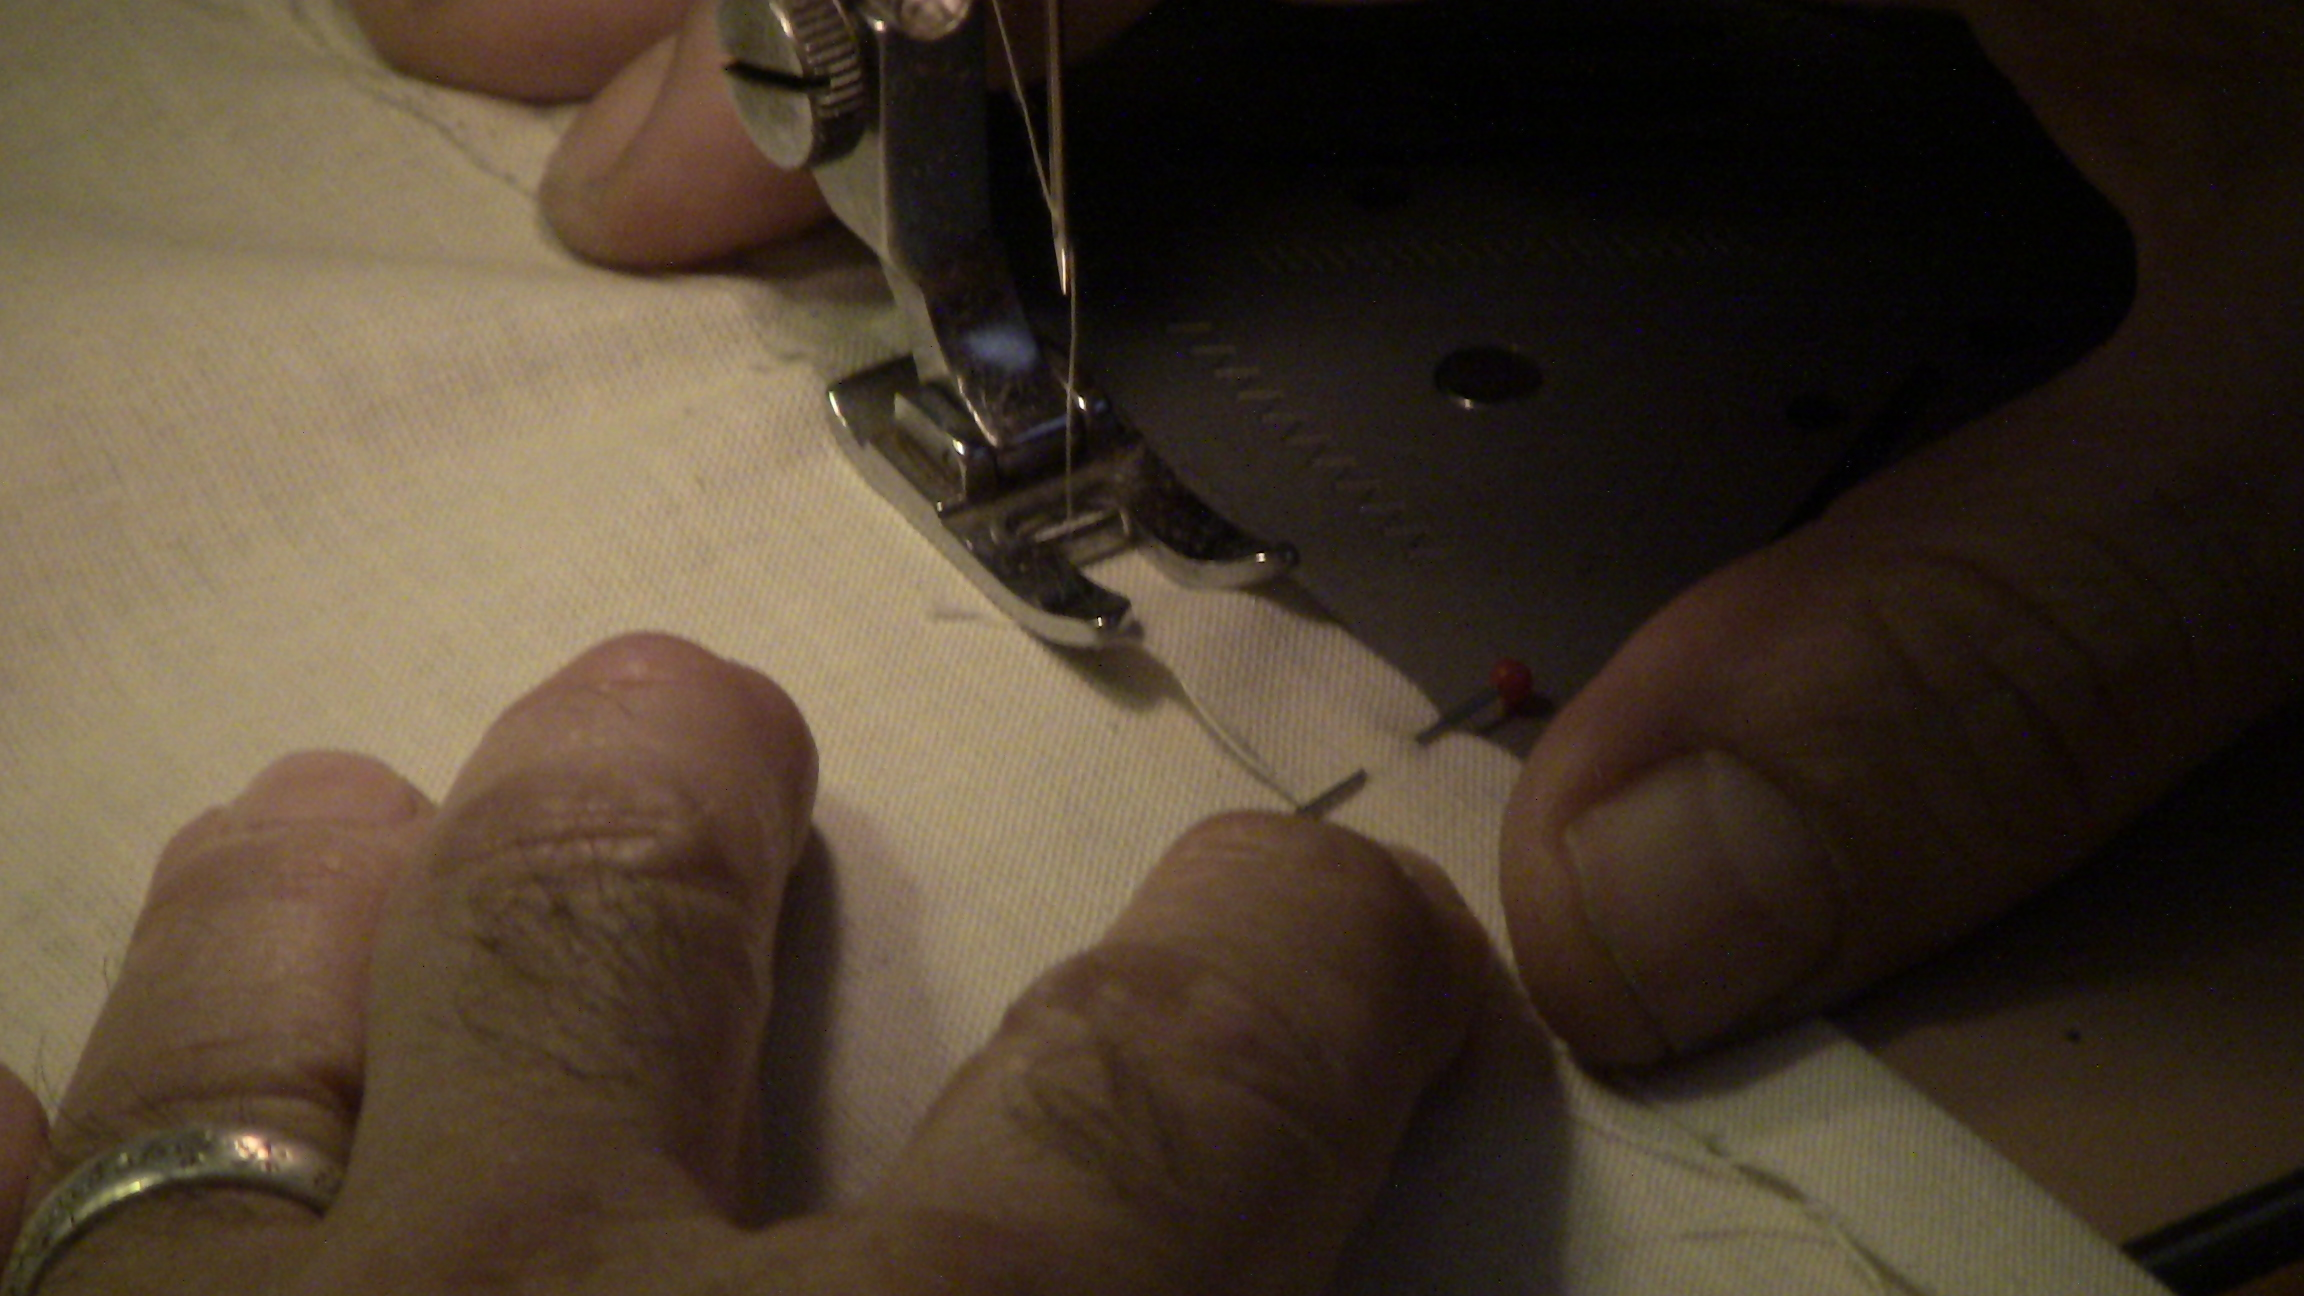 Obligatory shot of me sewing a seam, proving that I do, in fact, sew.